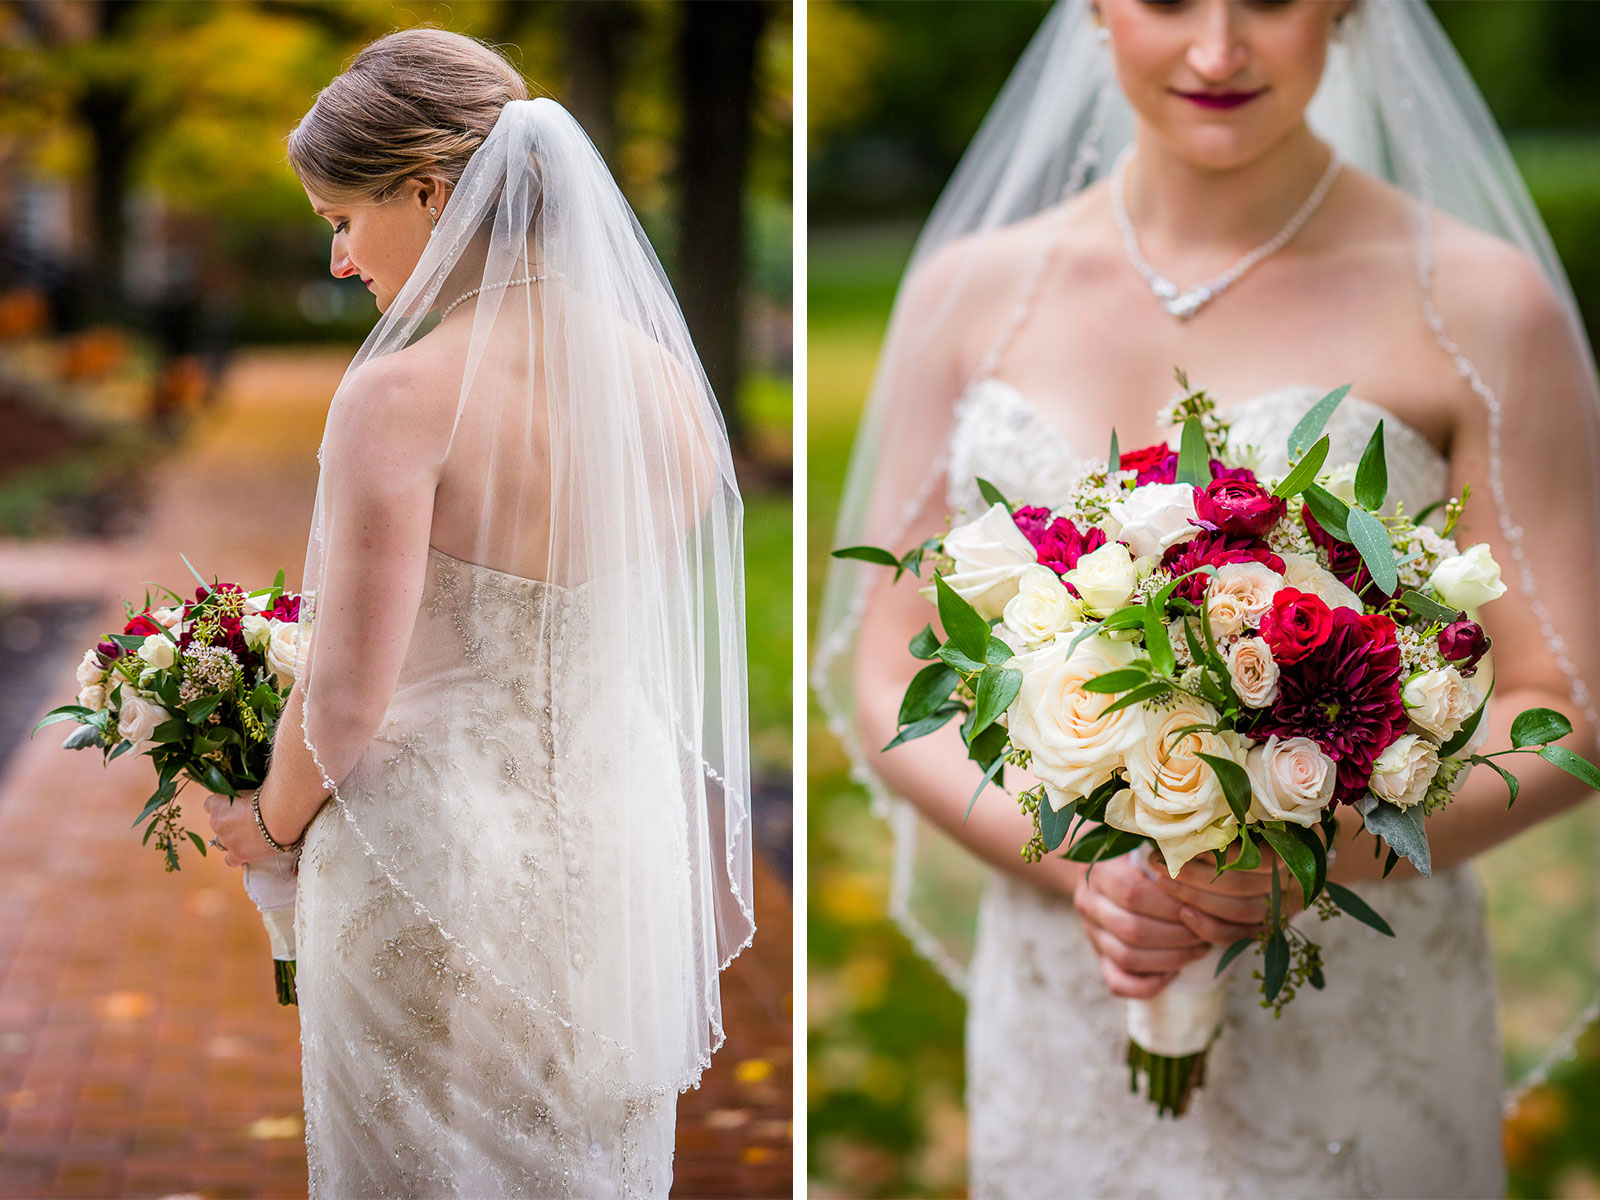 Eric_and_Christy_Photography_Blog_2018_Portraits-14-15